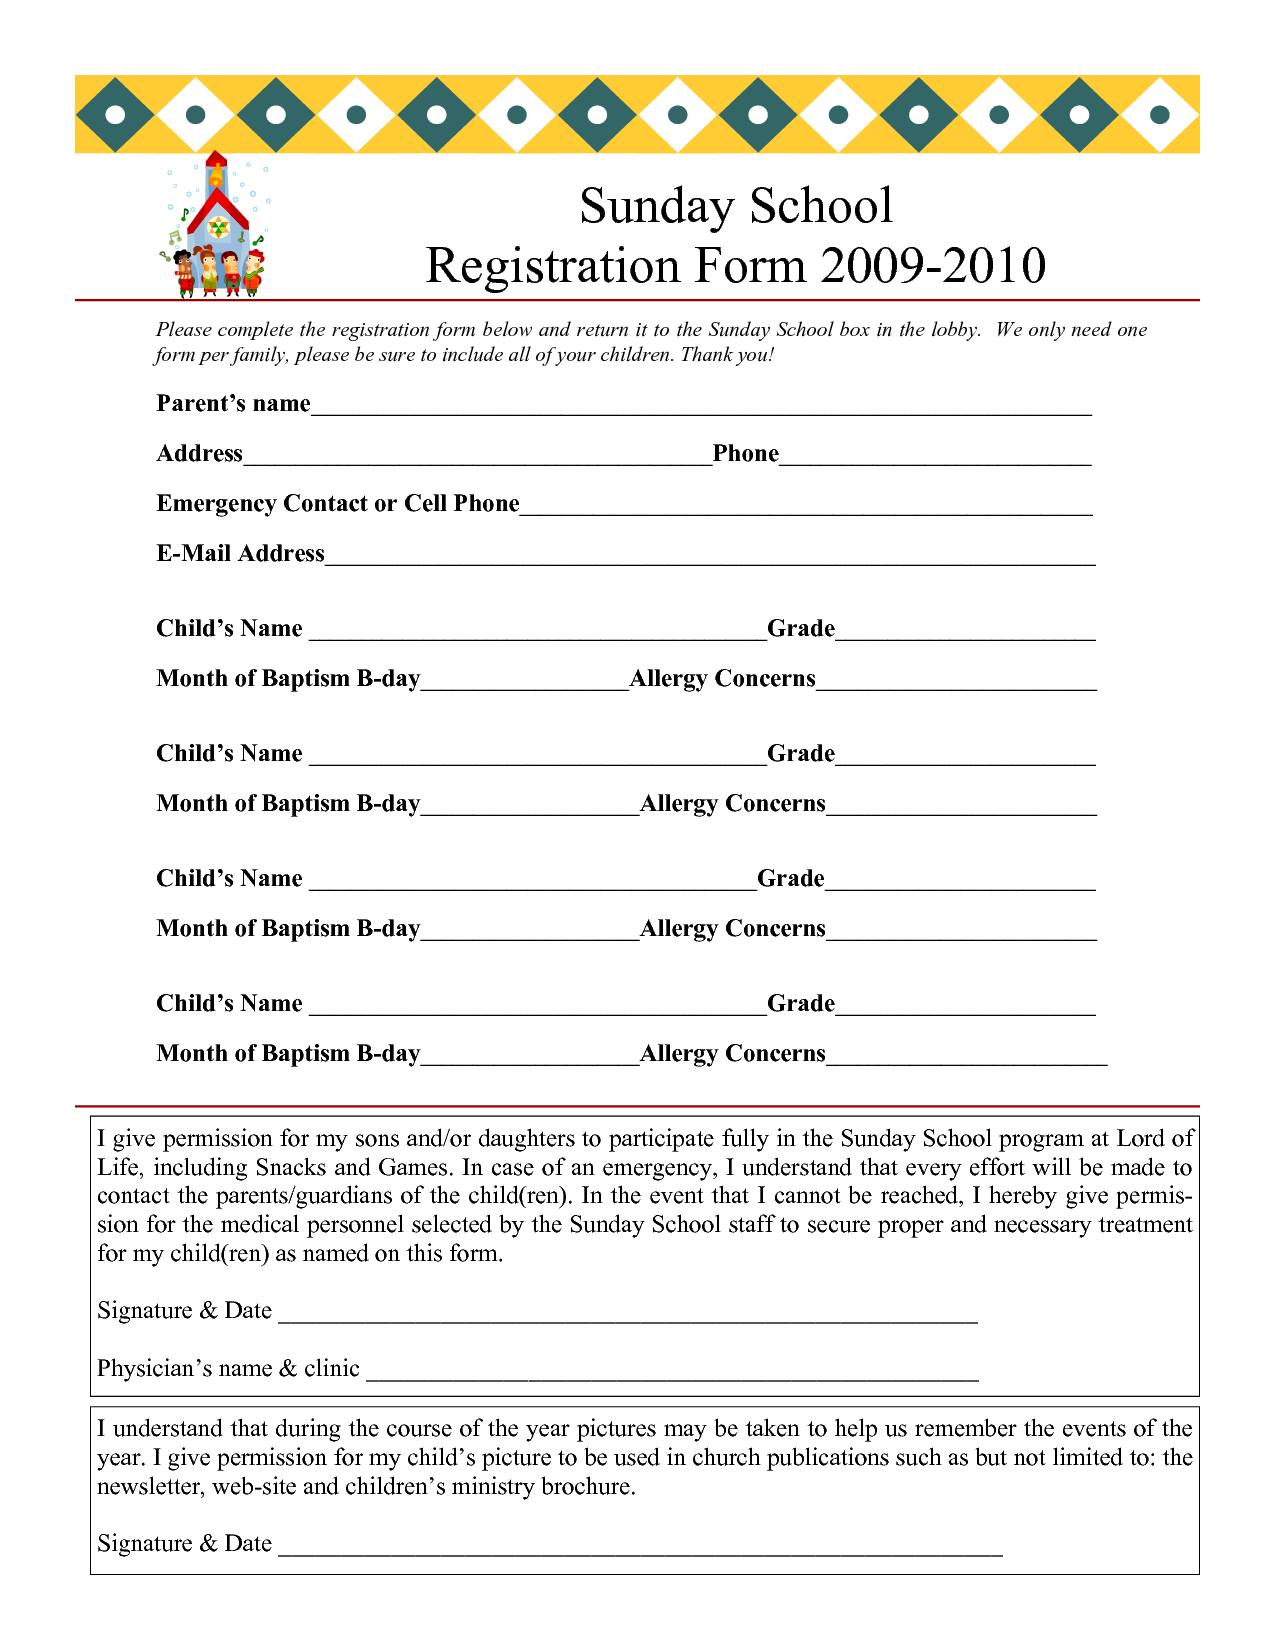 Sunday School Registration Form 2009 2010  Enrollment Form Template Word